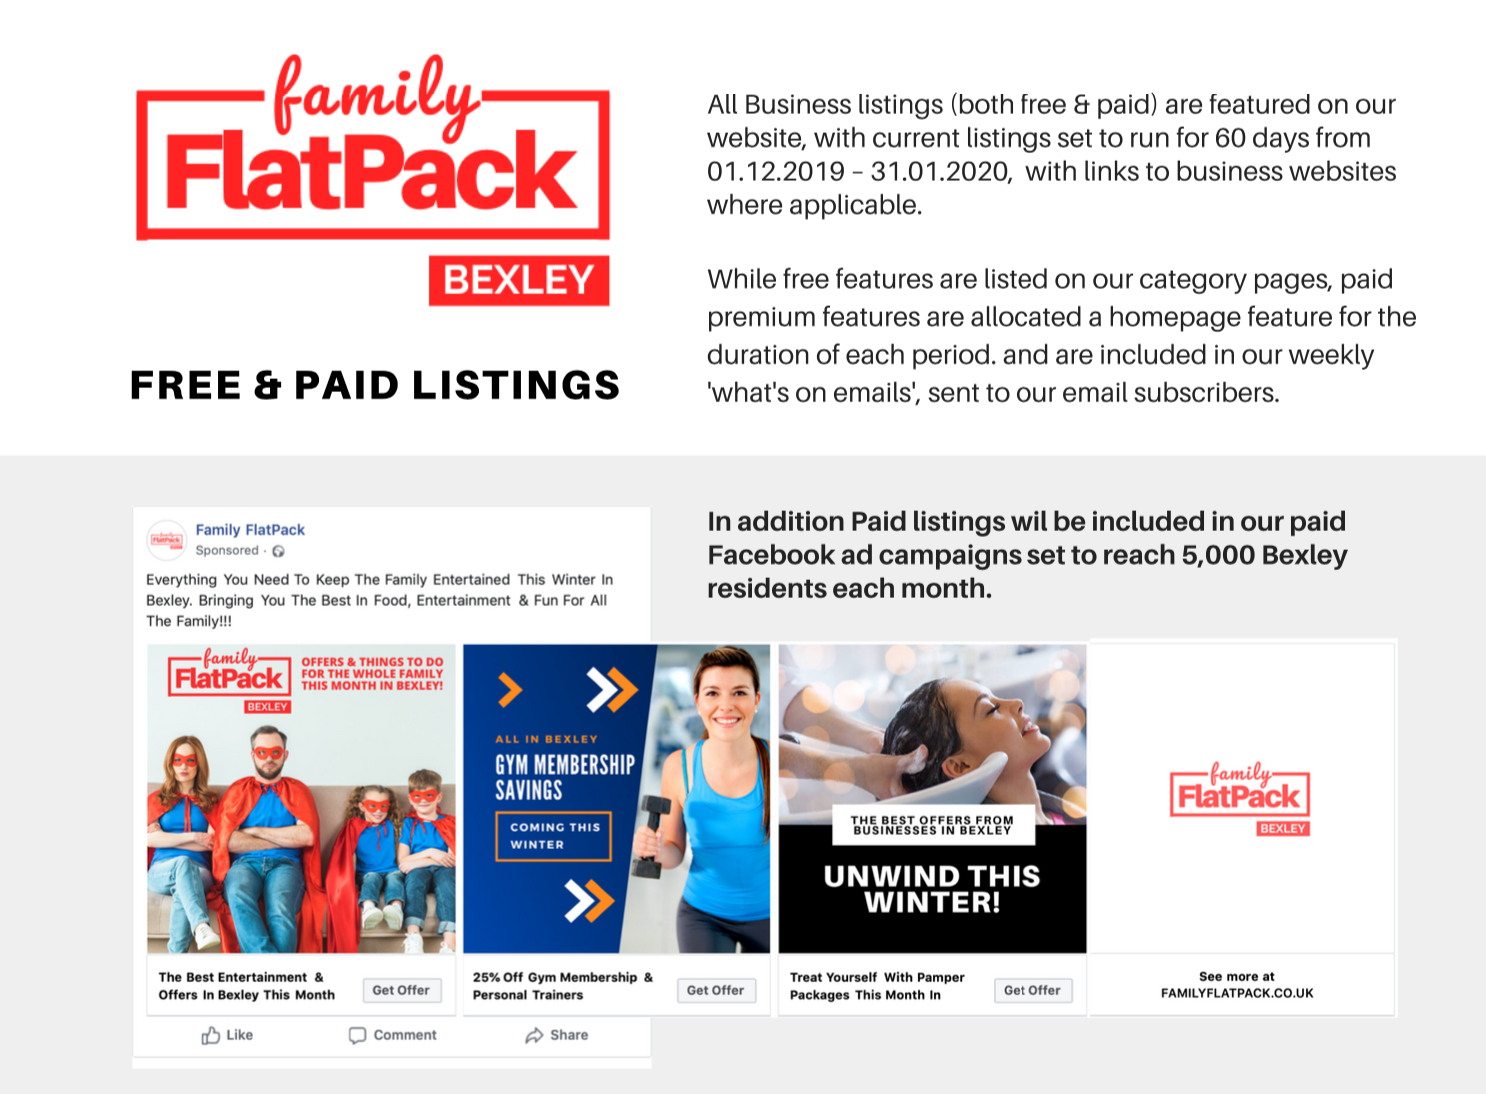 Company Documents | Family FlatPack